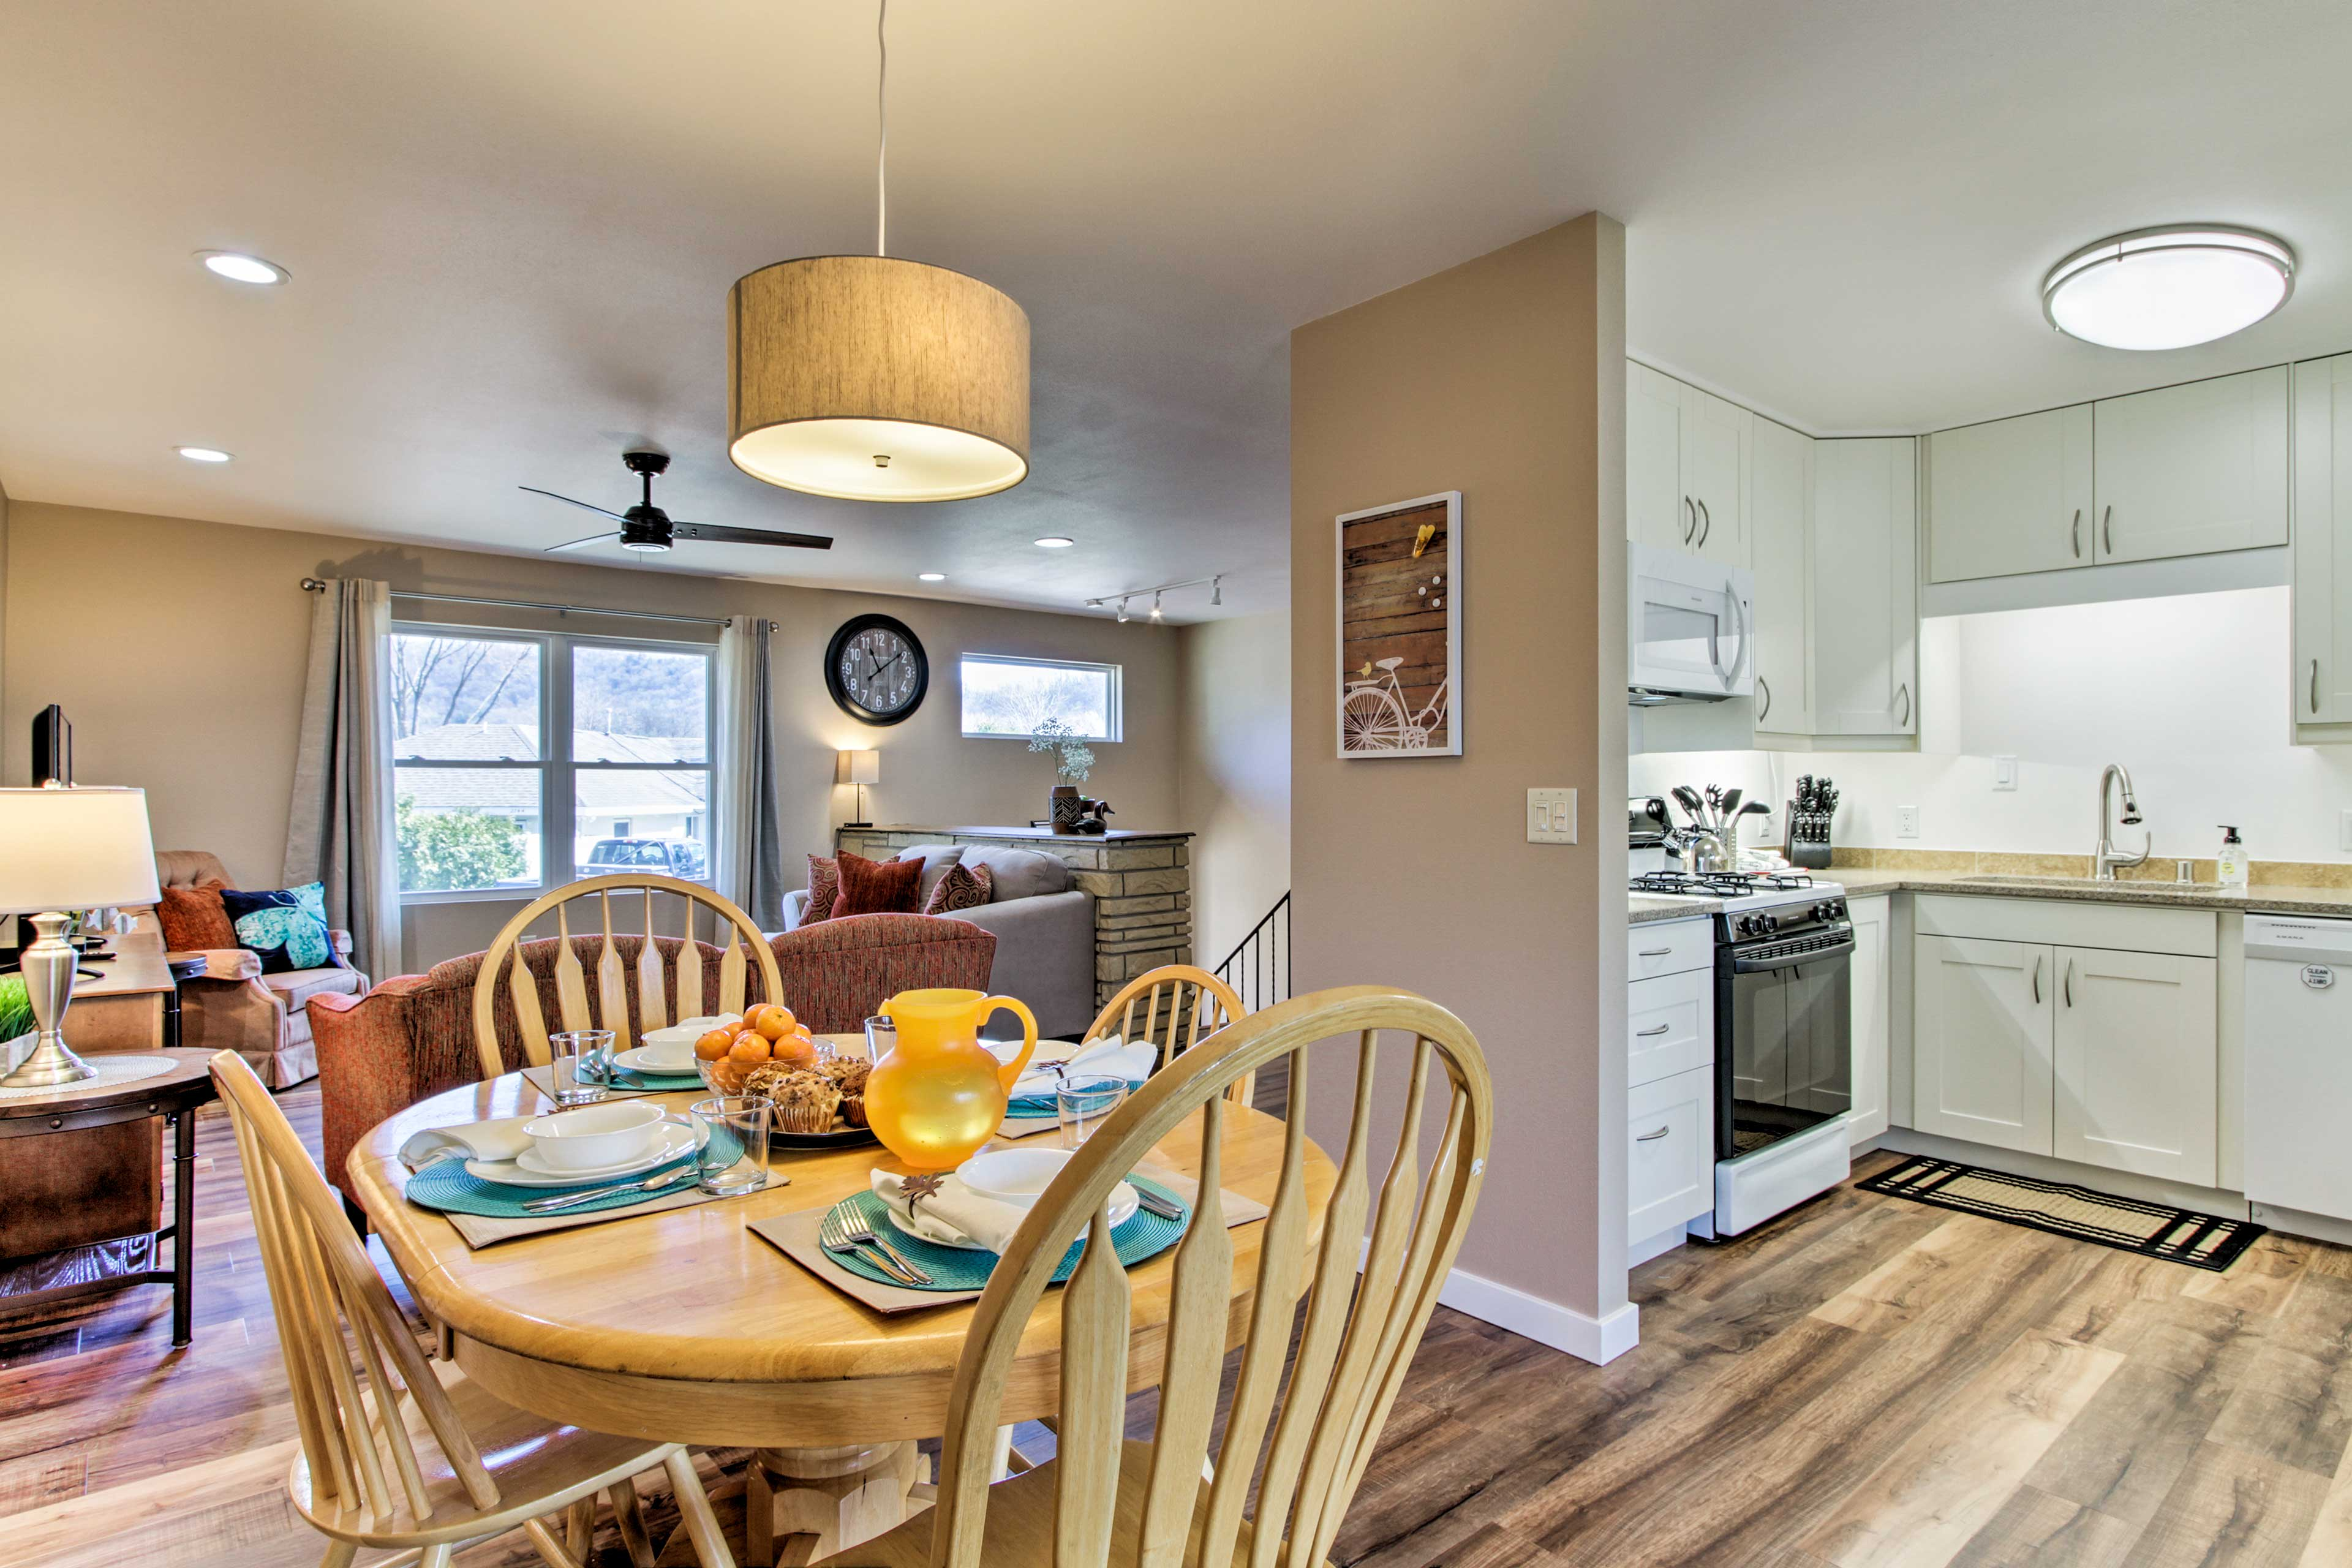 Step inside and enter the fully equipped kitchen area.